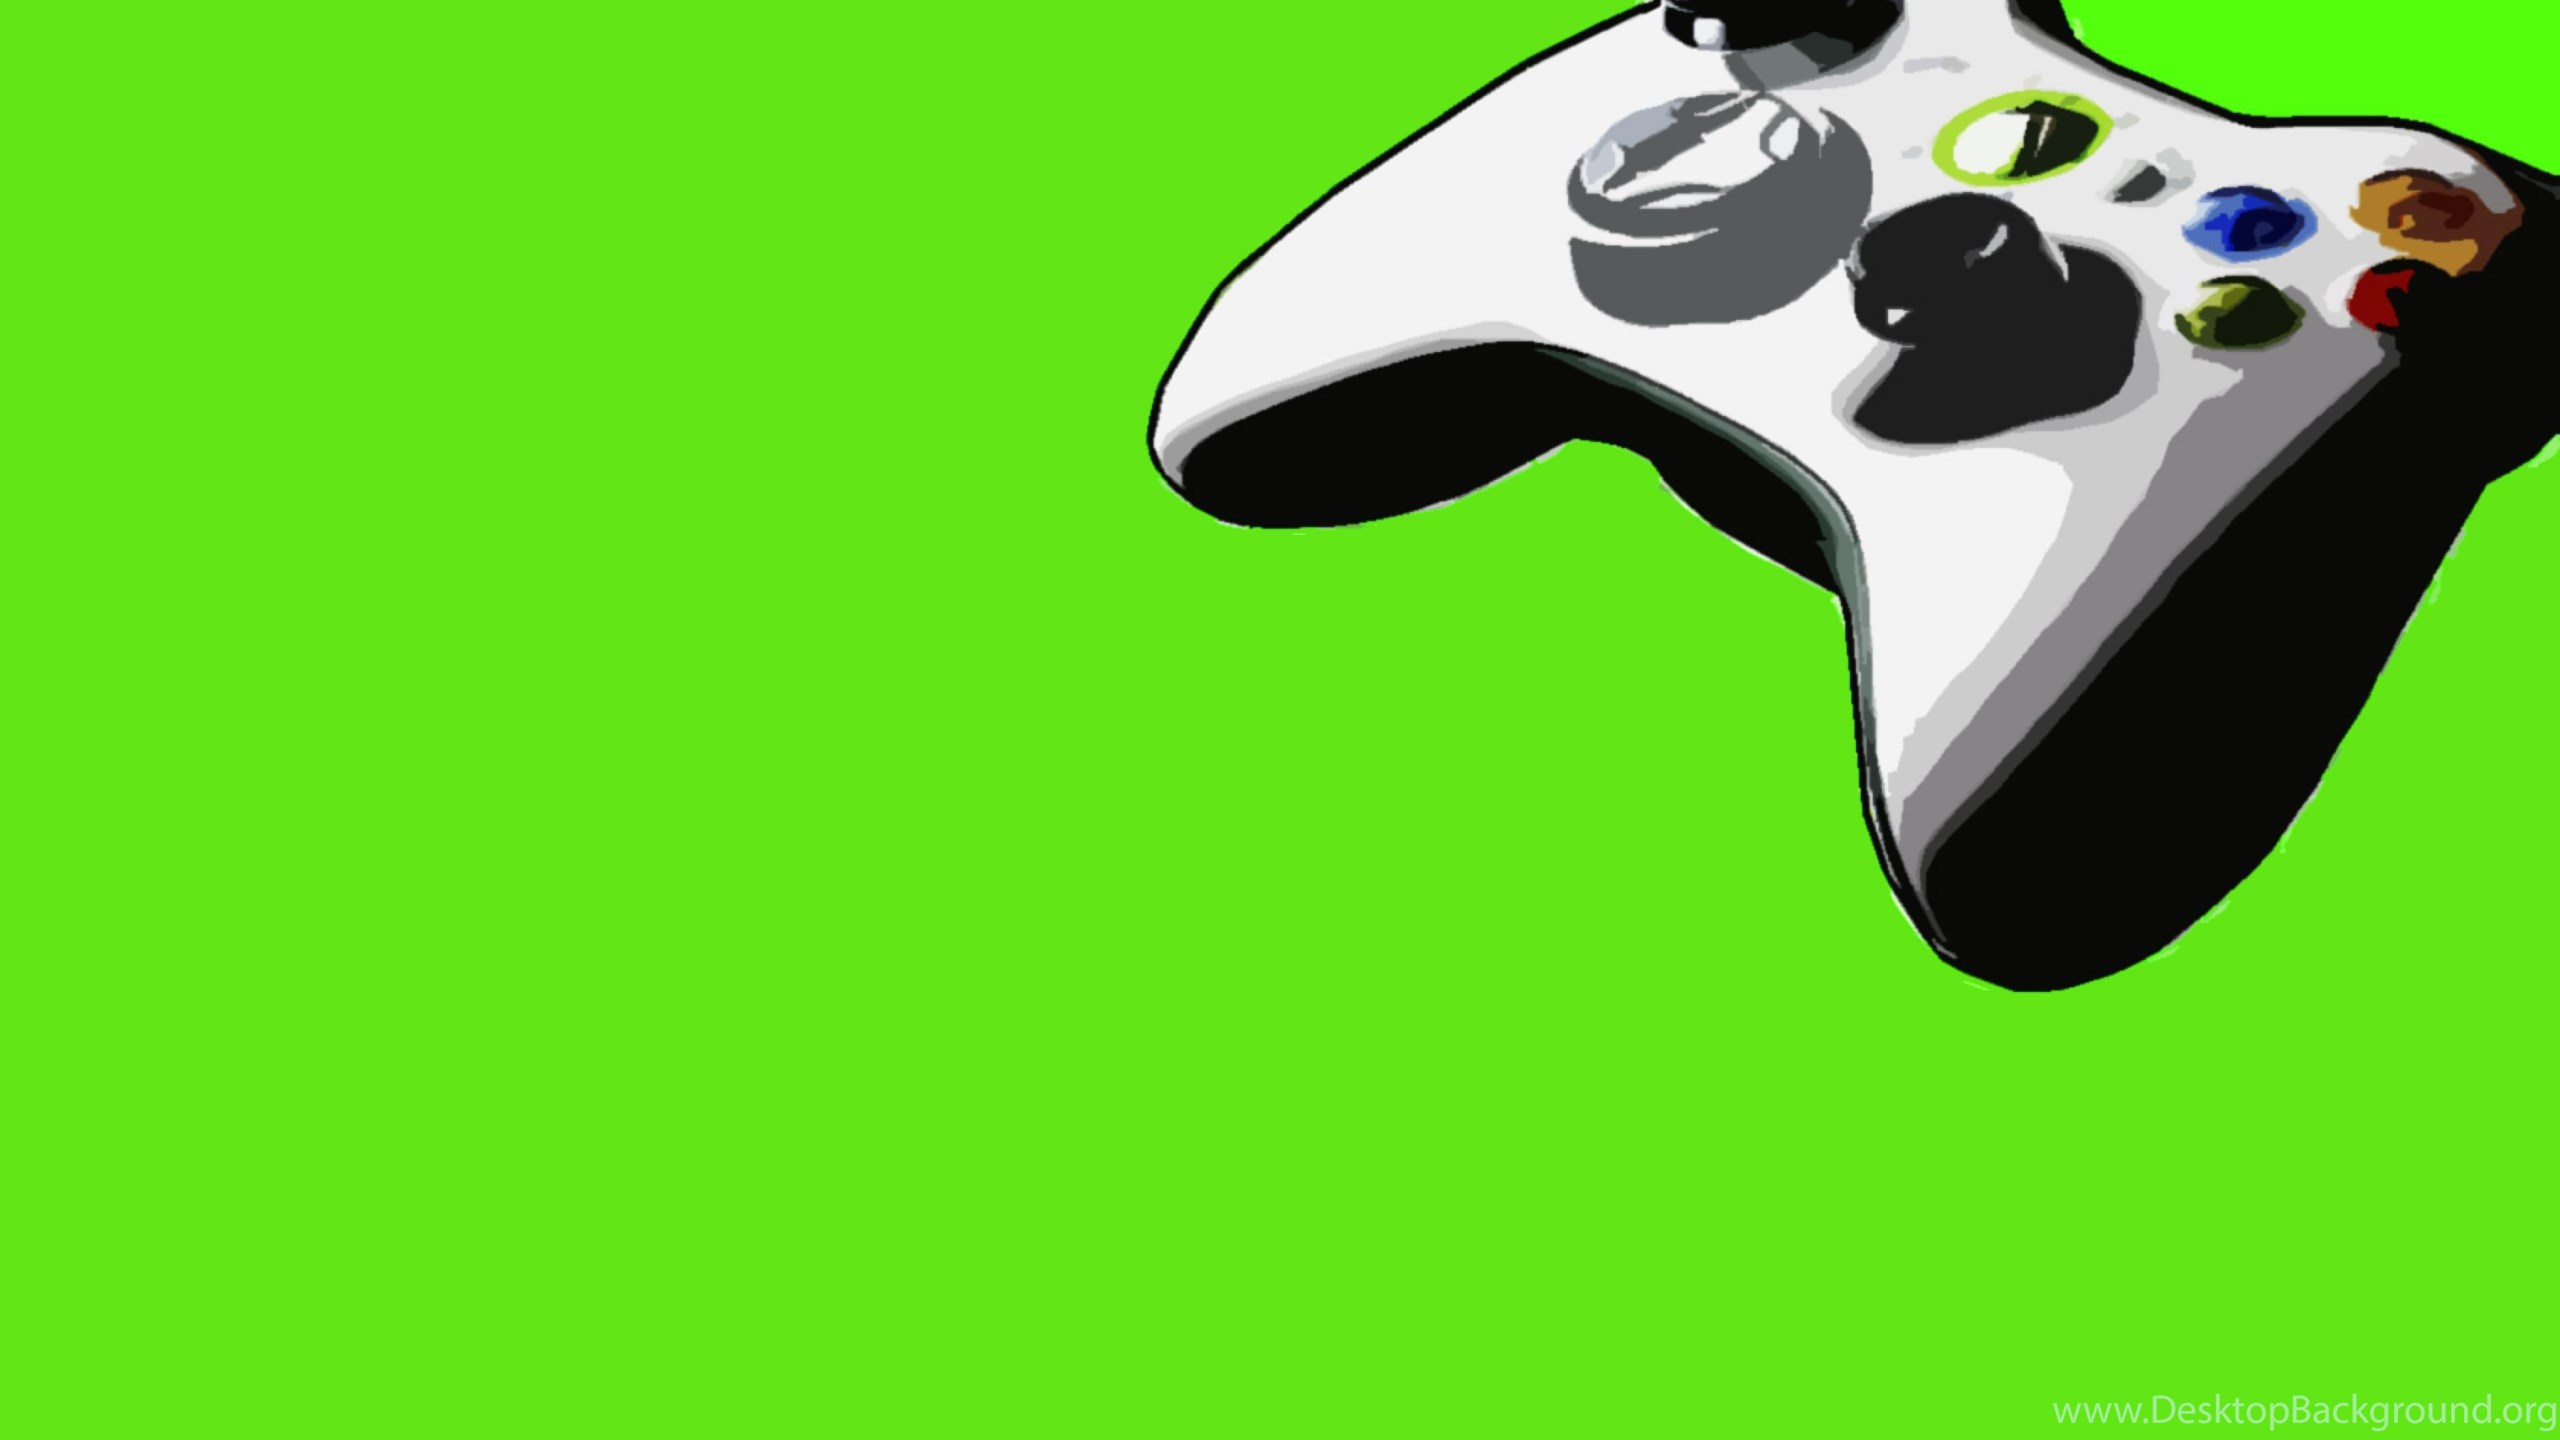 Green Video Games Xbox Controllers 360 Backgrounds Videogames Desktop Background